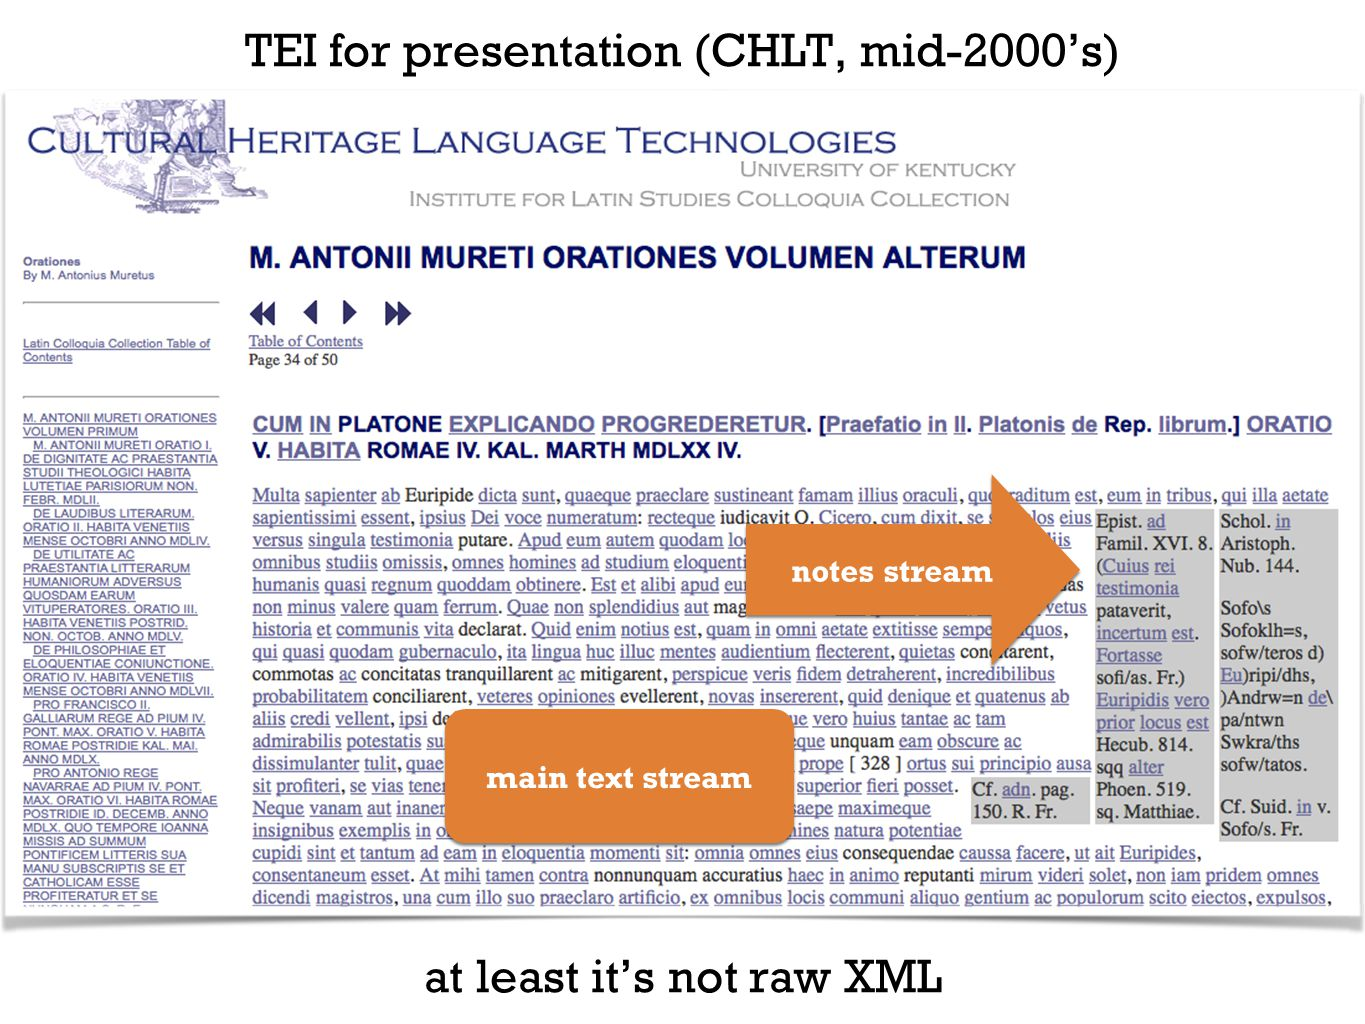 TEI for presentation (CHLT, mid-2000's) main text stream notes stream at least it's not raw XML